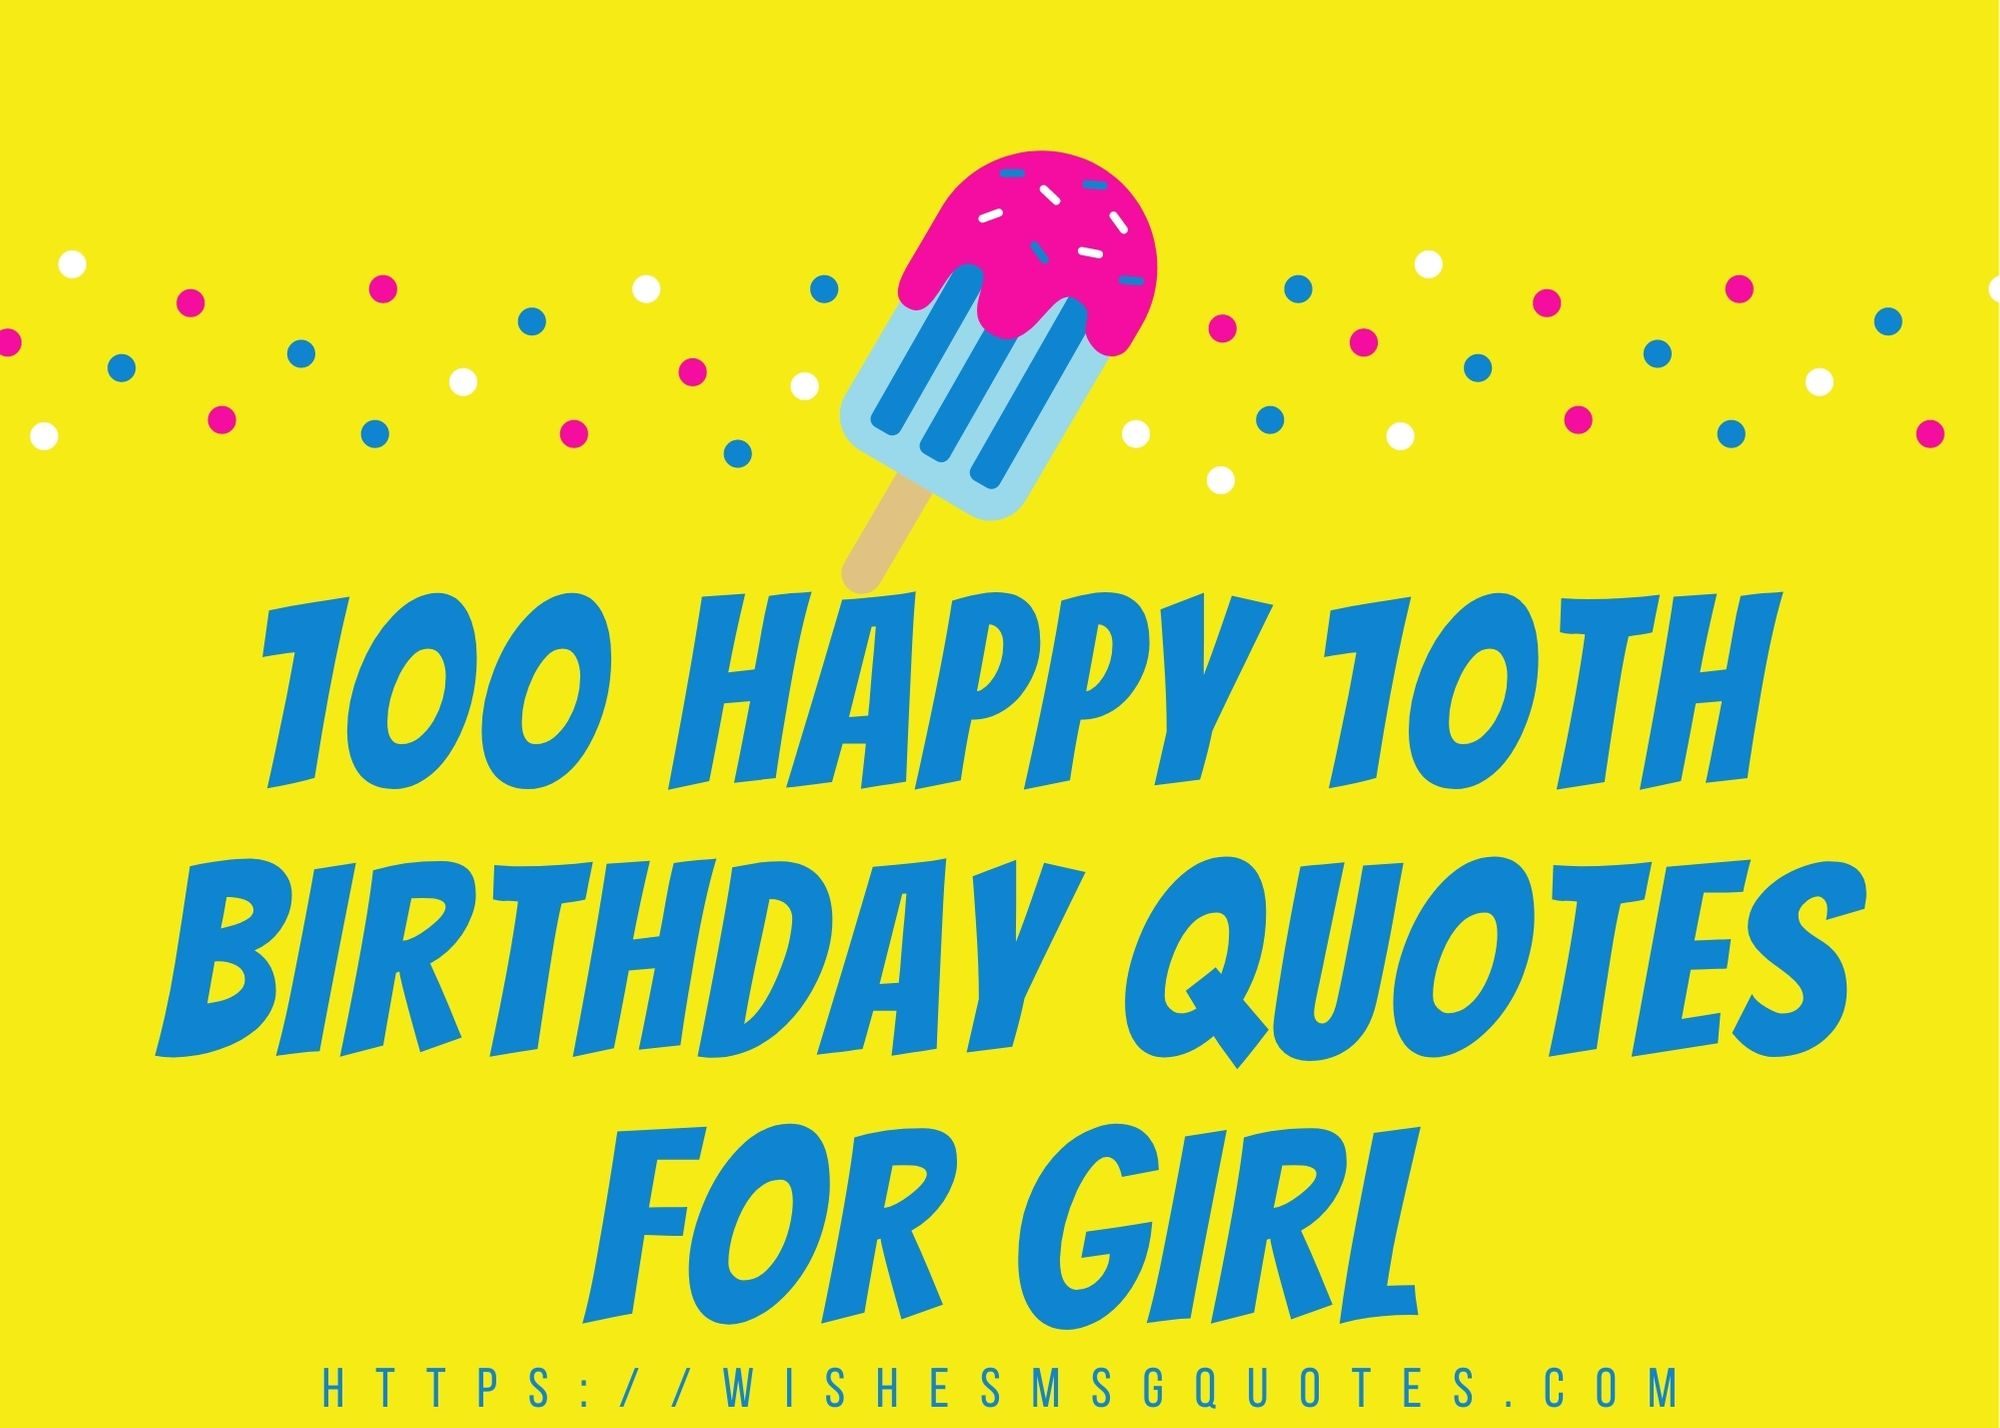 100 Happy 10th Birthday Quotes For Girl